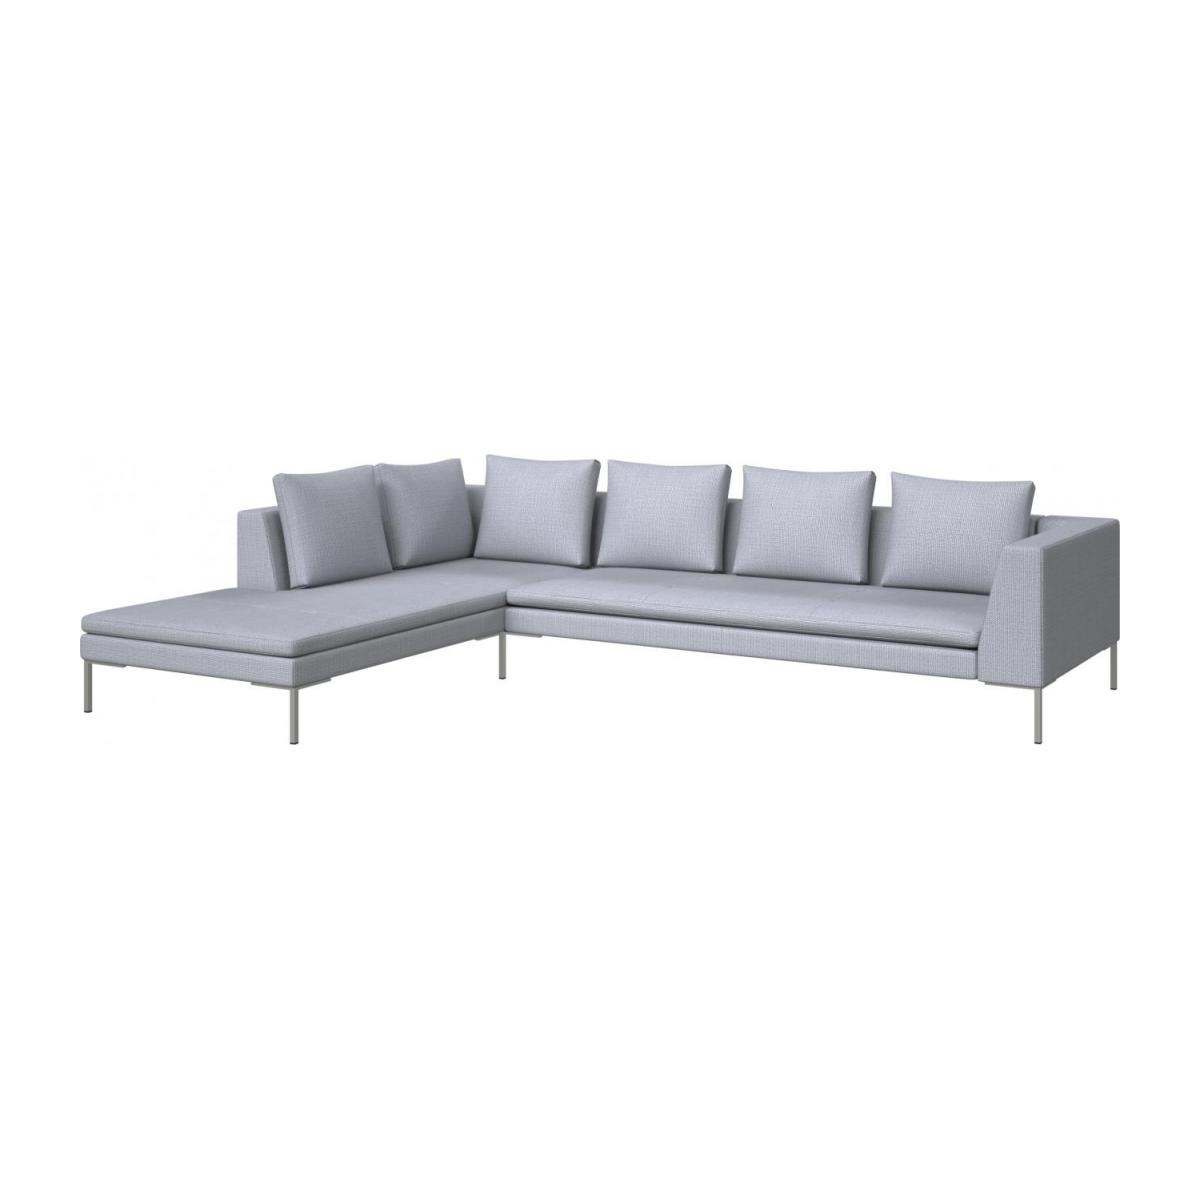 3-Sitzer Sofa aus Stoff Fasoli grey sky mit Chaiselongue links